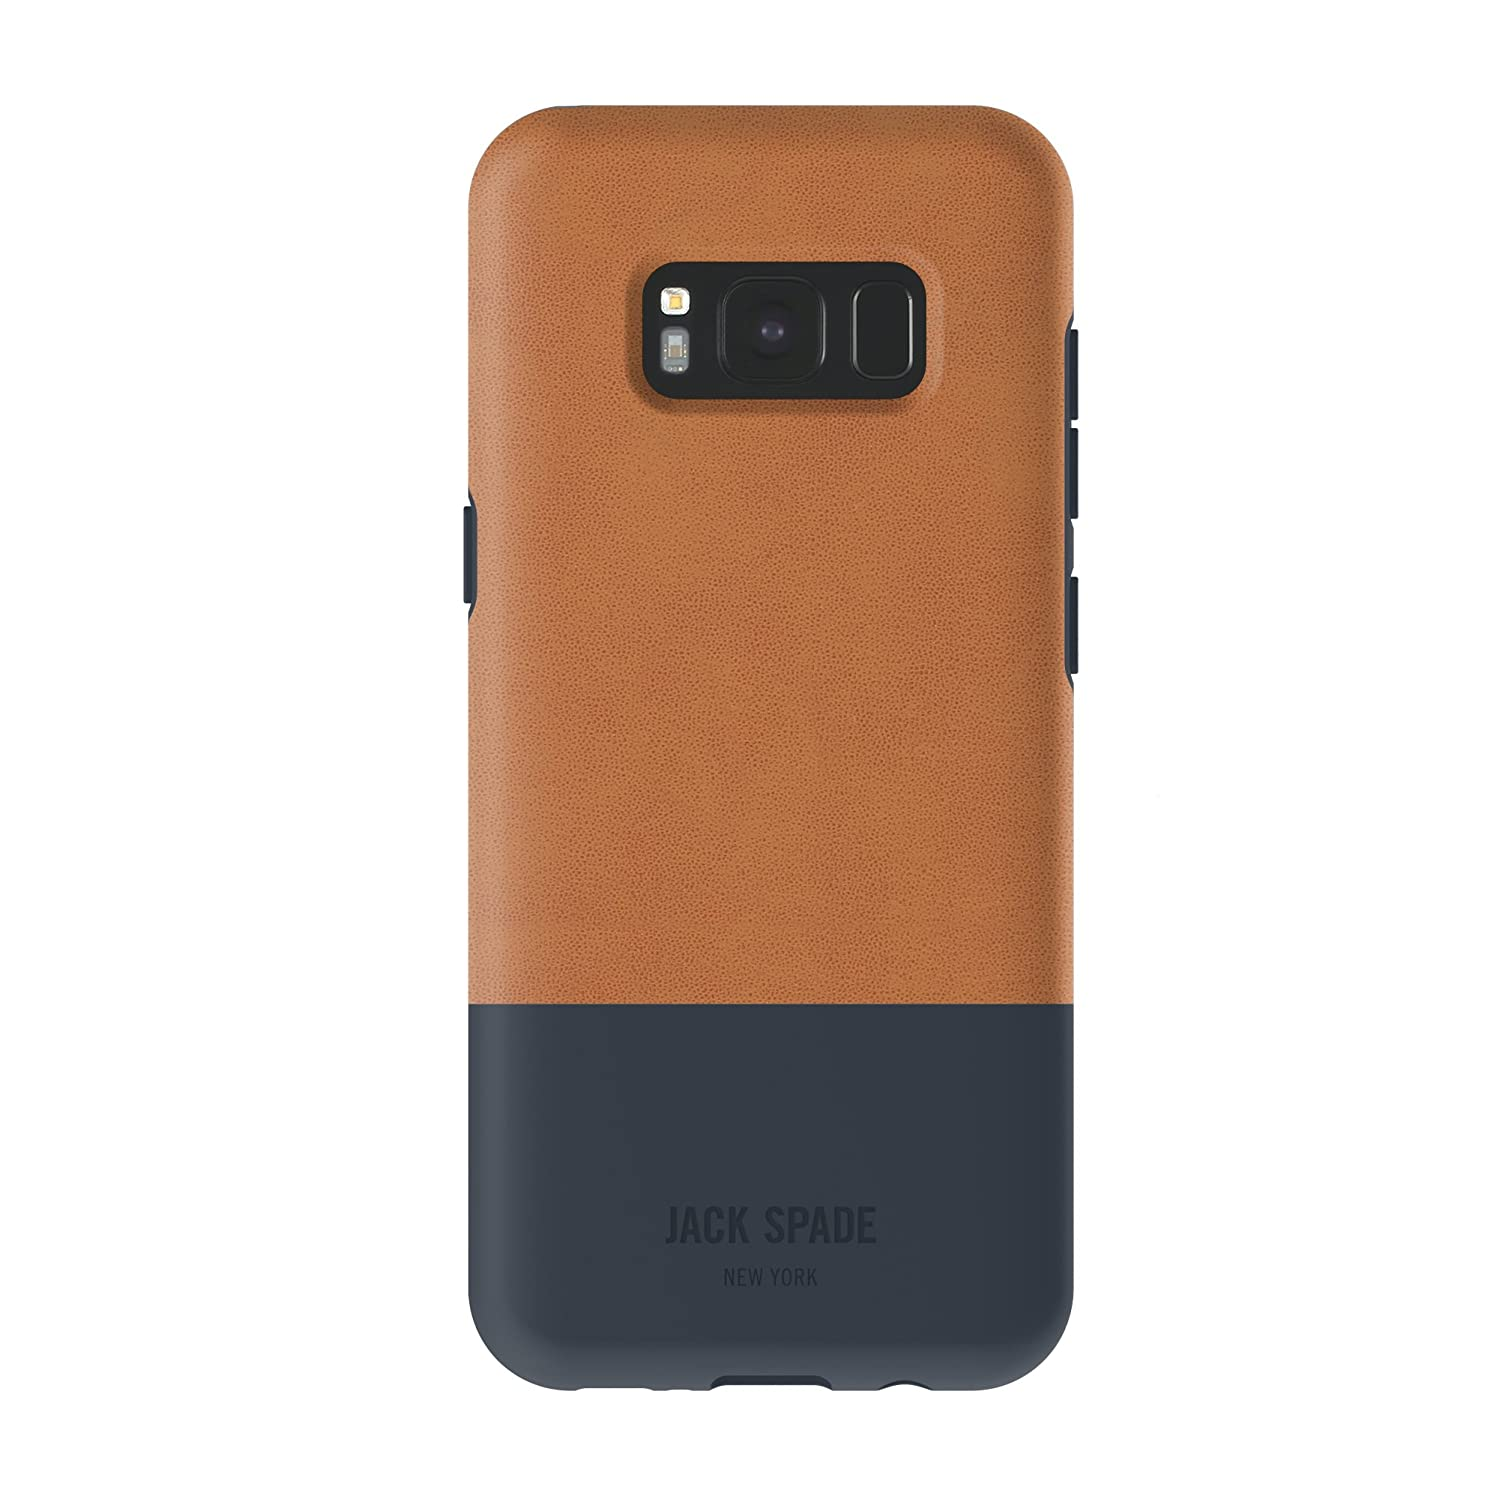 JACK SPADE Color-Block Case for Samsung Galaxy S8 - Fulton Tan/Navy